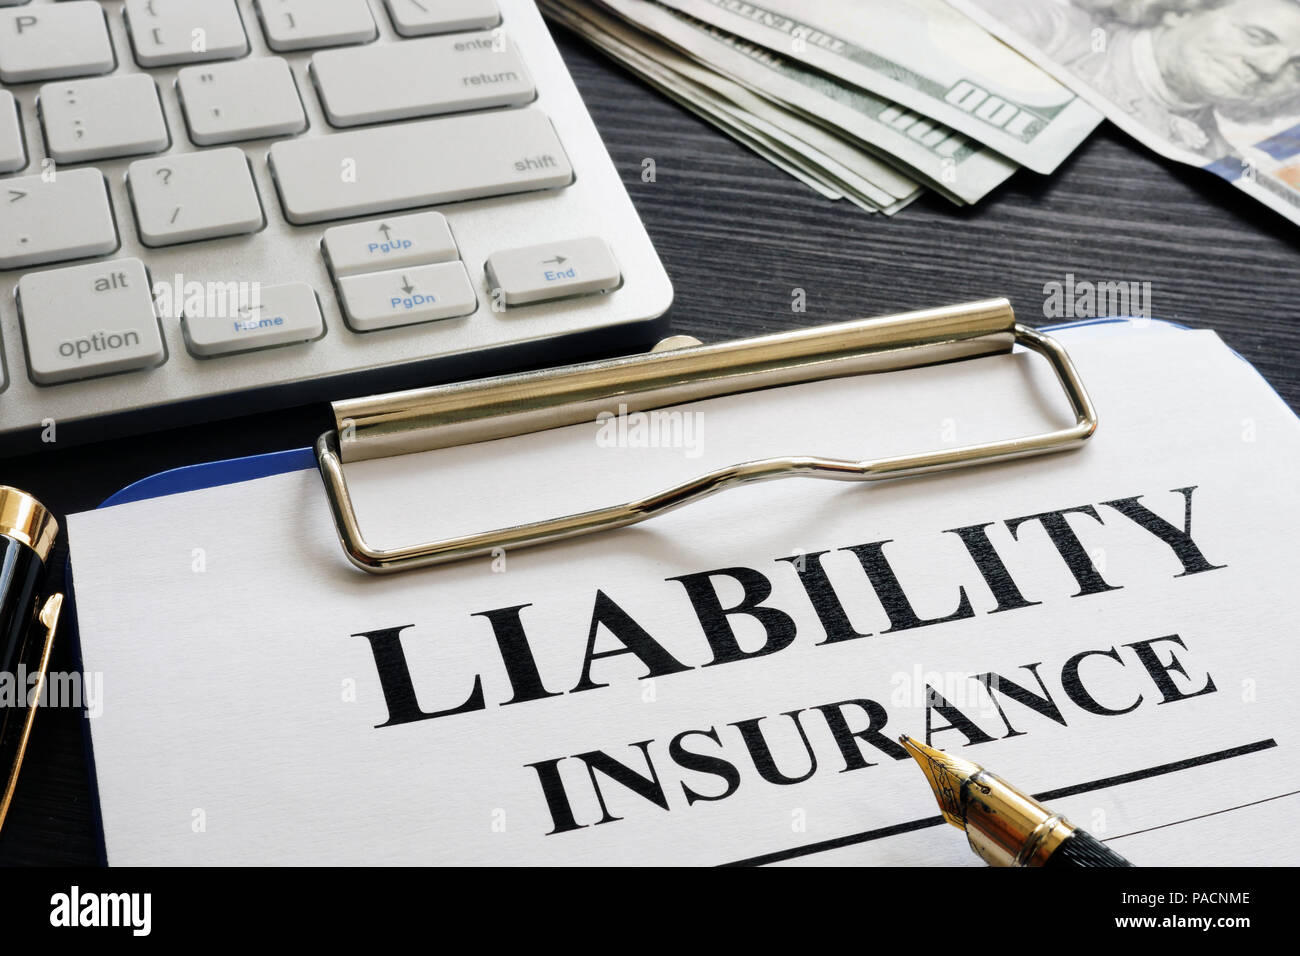 Liability insurance agreement on the desk. - Stock Image